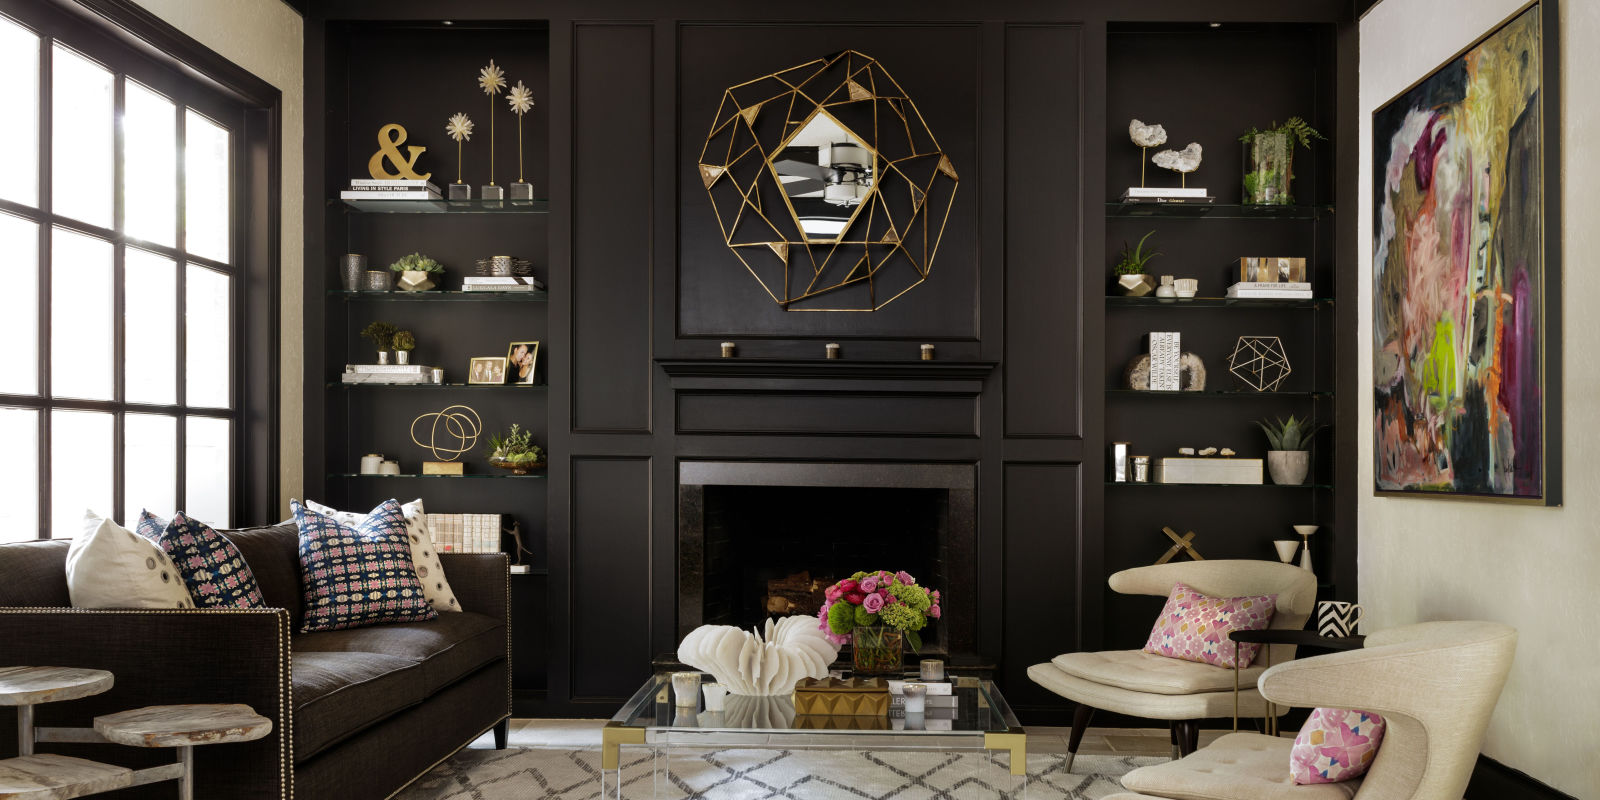 Bookcase decoration ideas how to style a bookcase - What did the wall say to the bookcase ...